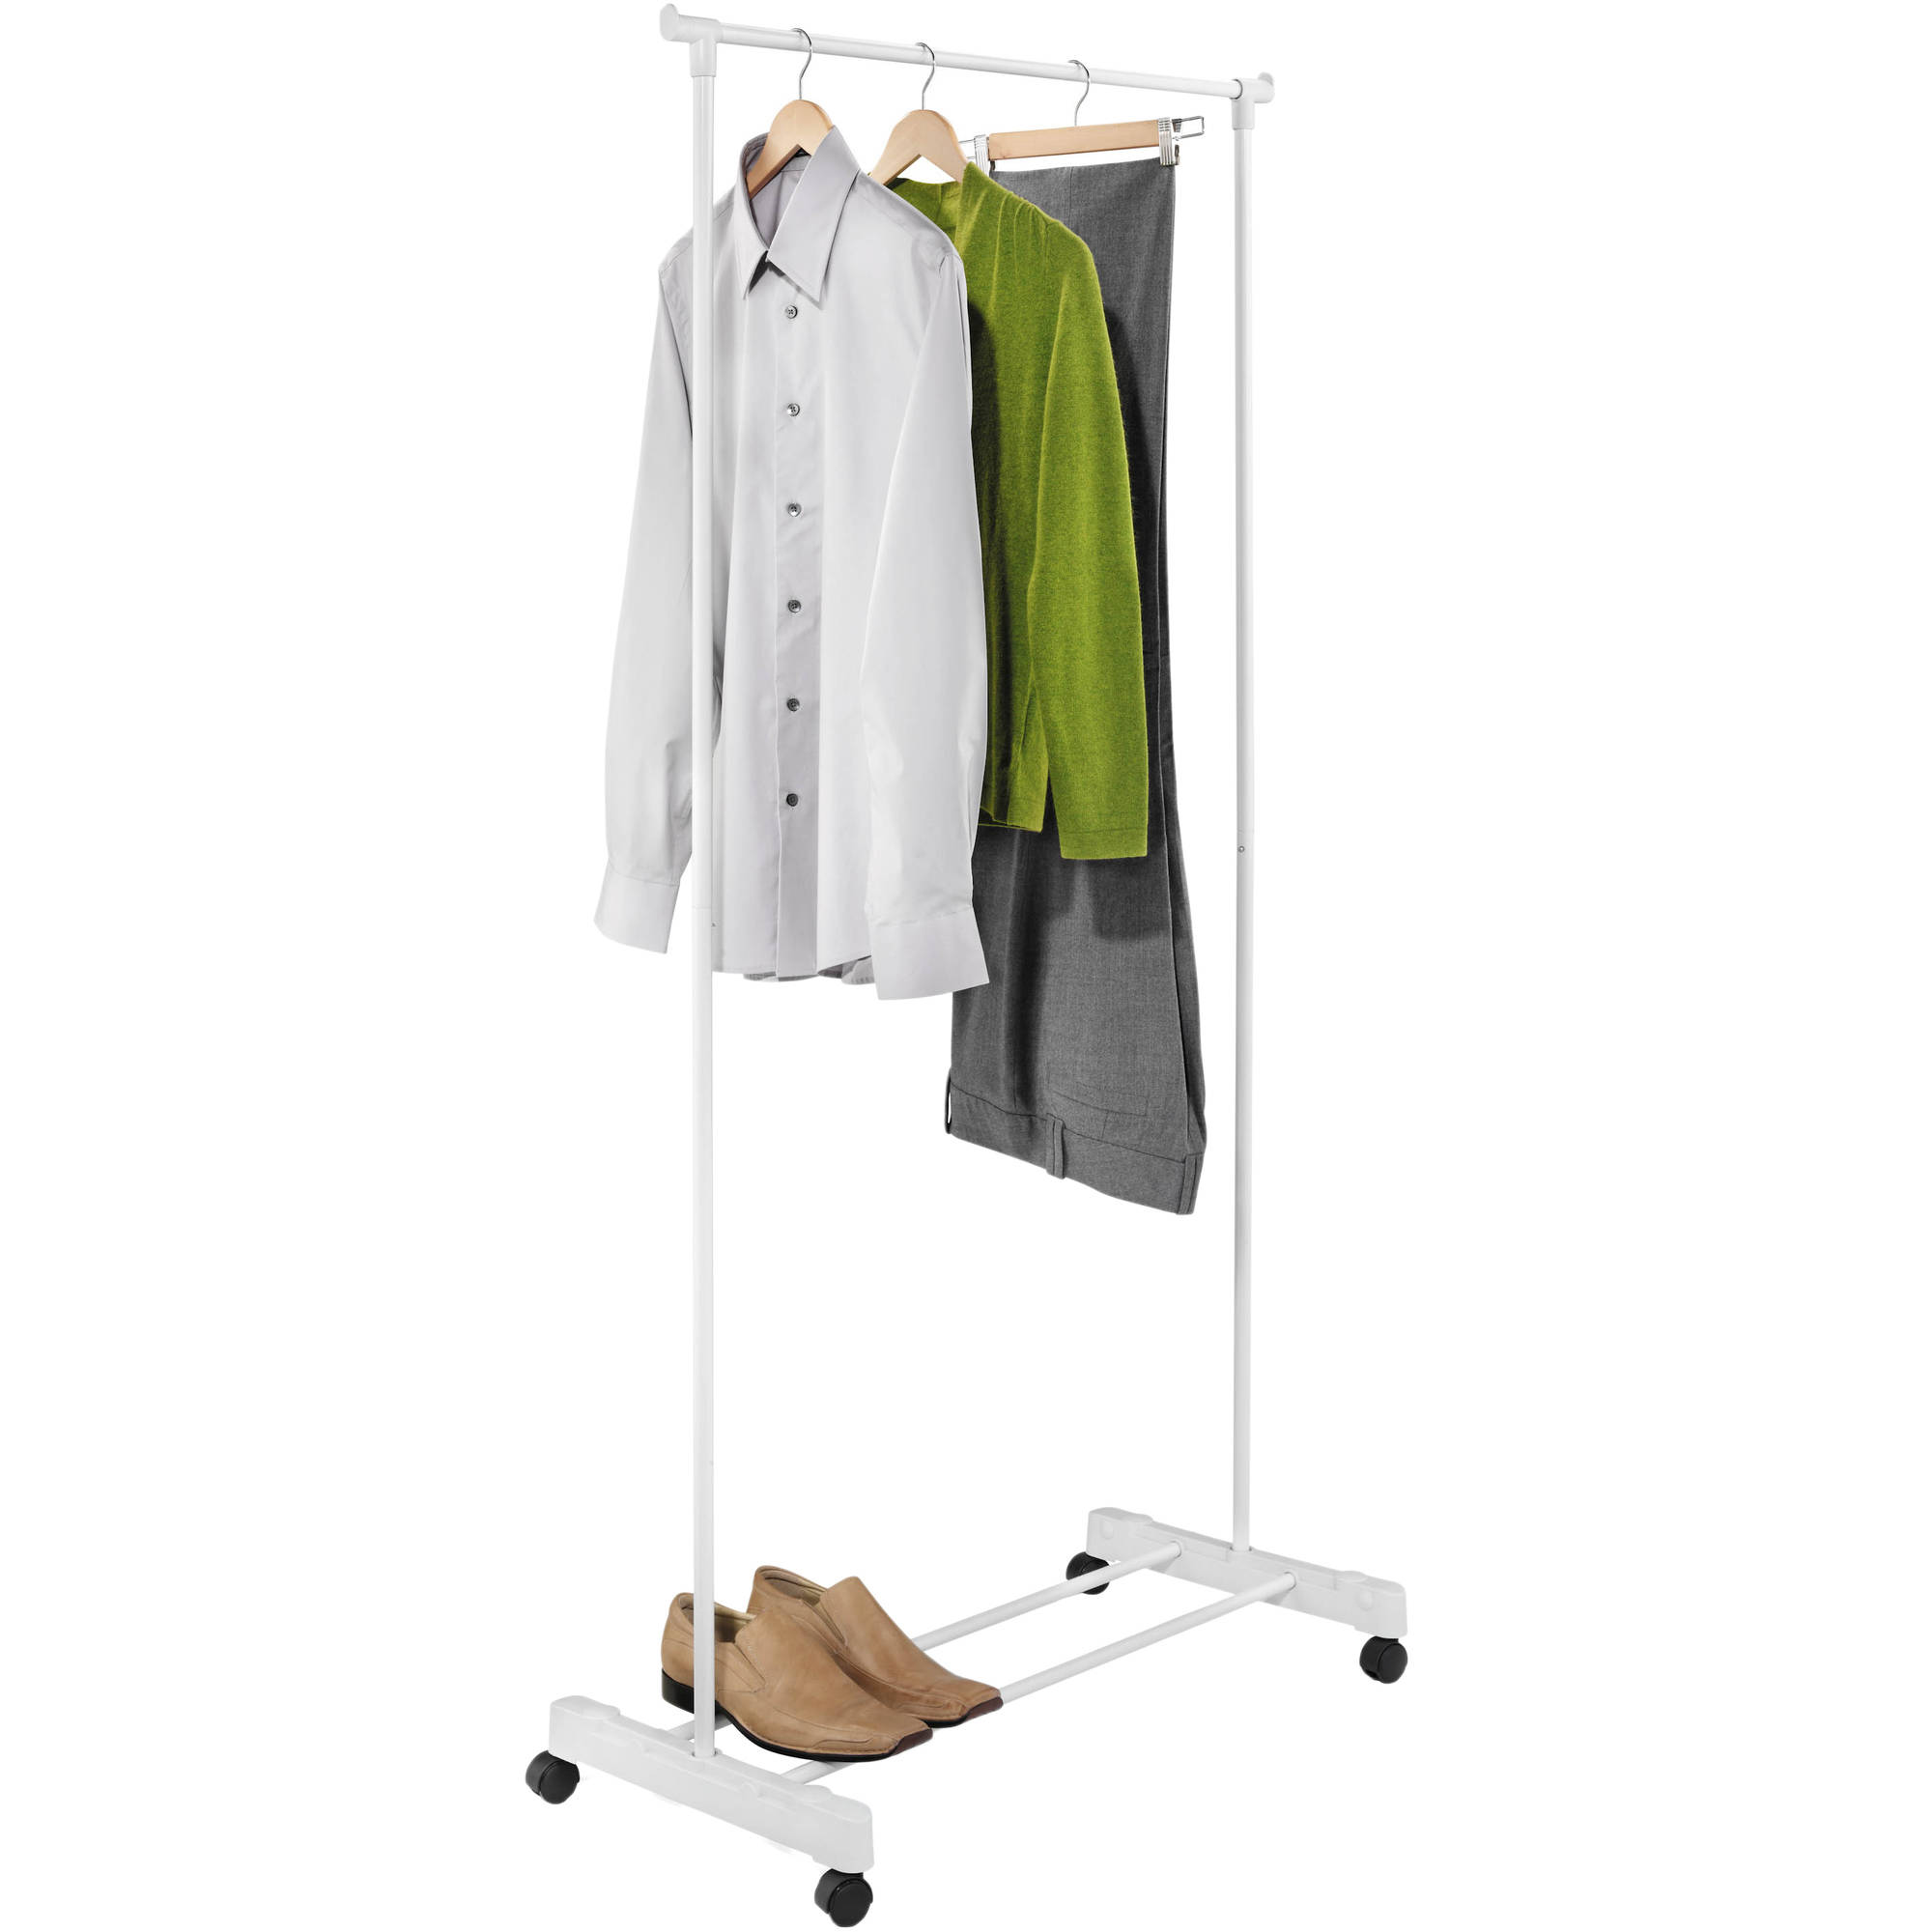 Clothing Racks   Walmart.com